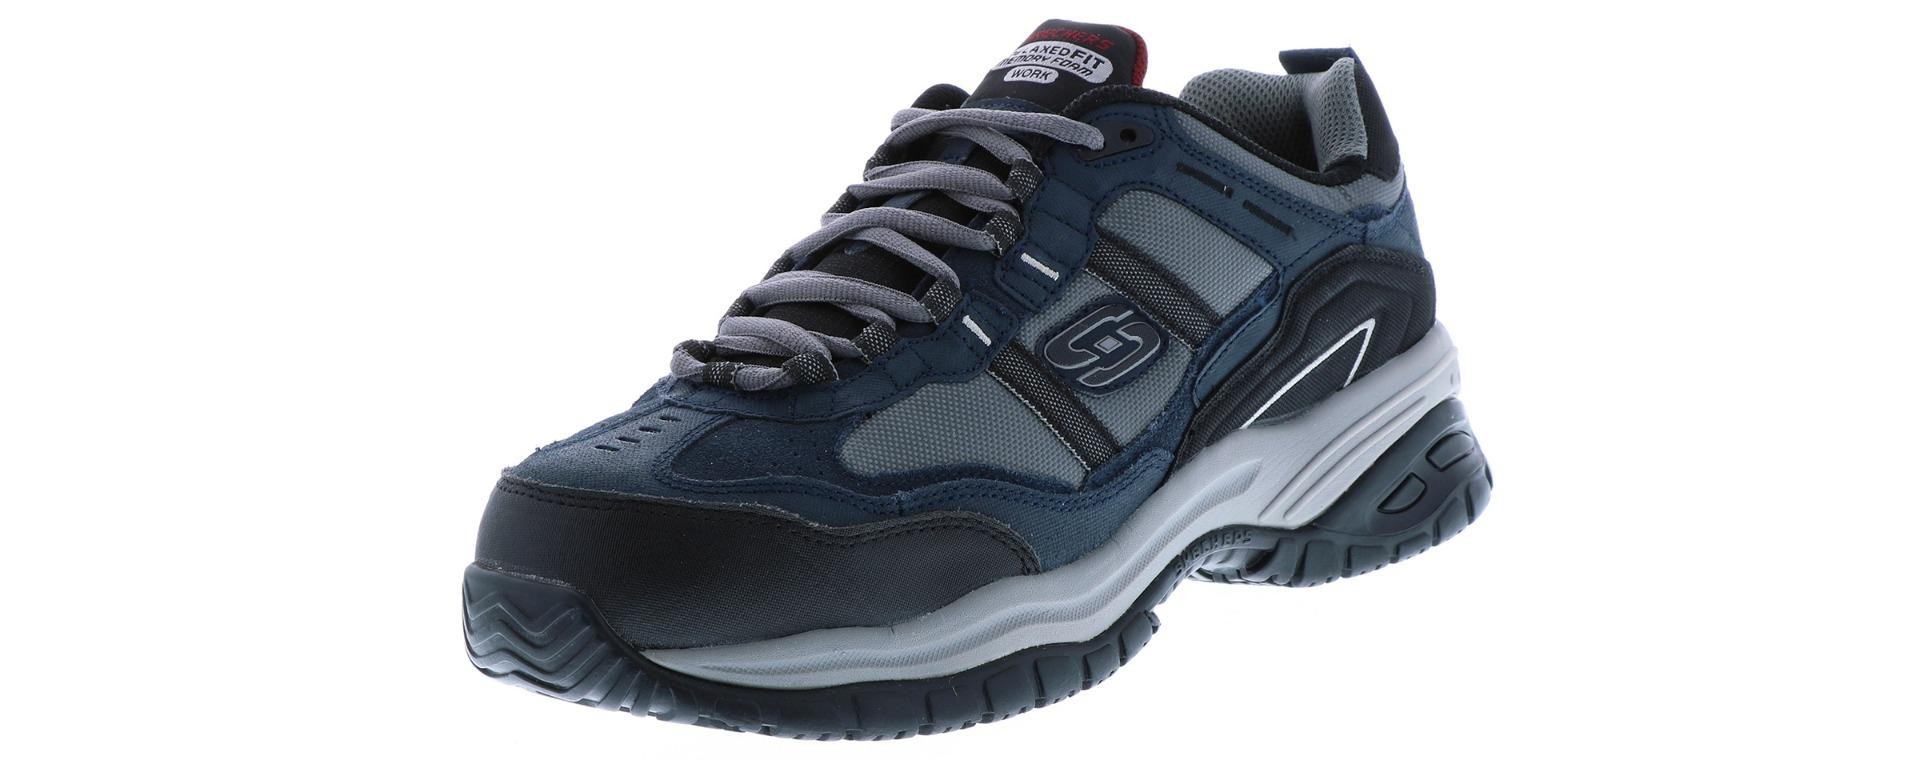 Chat Men's For Work Stride Soft Skechers 8XwZNOPn0k